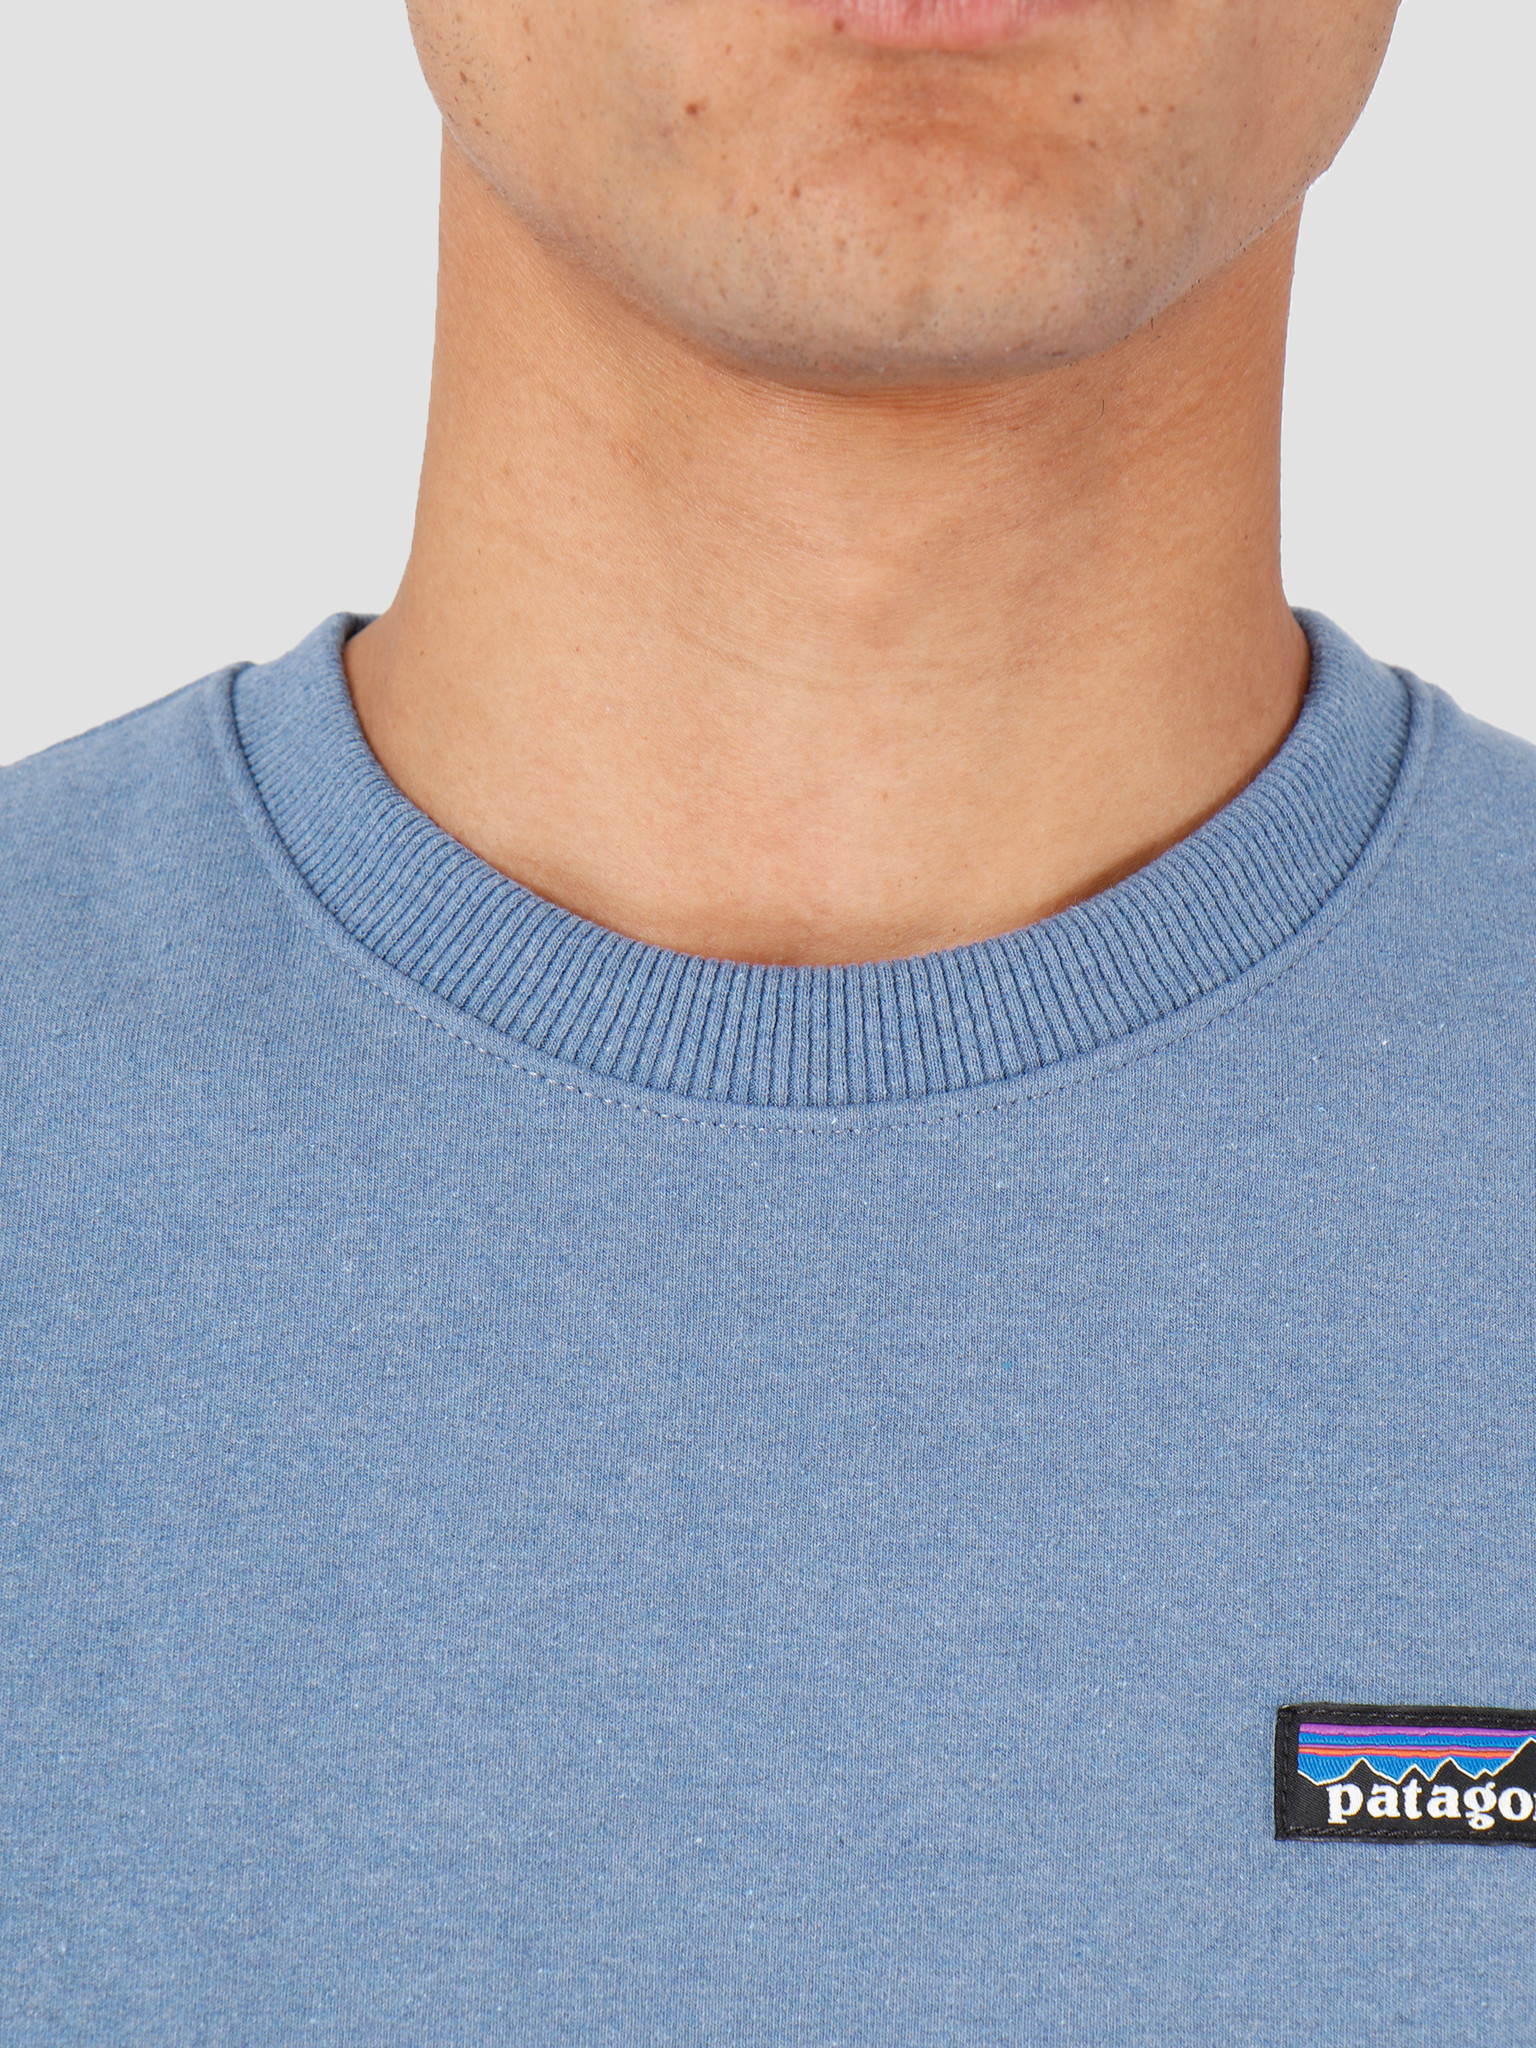 Patagonia Patagonia P-6 Label Uprisal Crew Sweatshirt Woolly Blue 39543